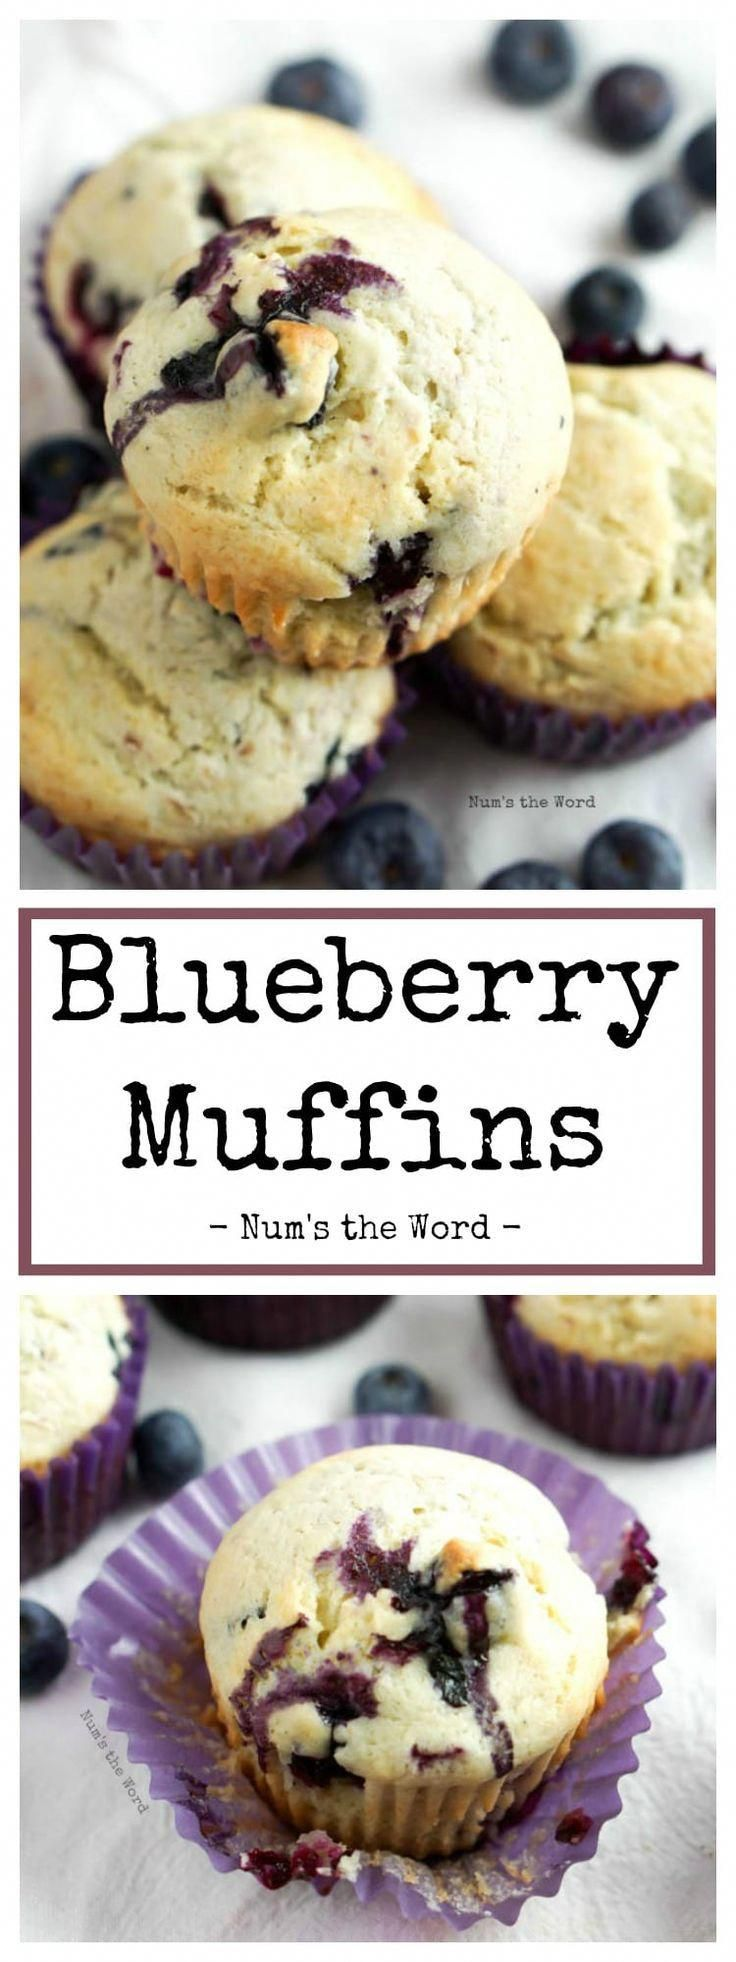 These easy blueberry muffins are quick and delicious. Not overly sweet and perfect for breakfast on the go or a snack. Kid friendly and fresh fruit approved!